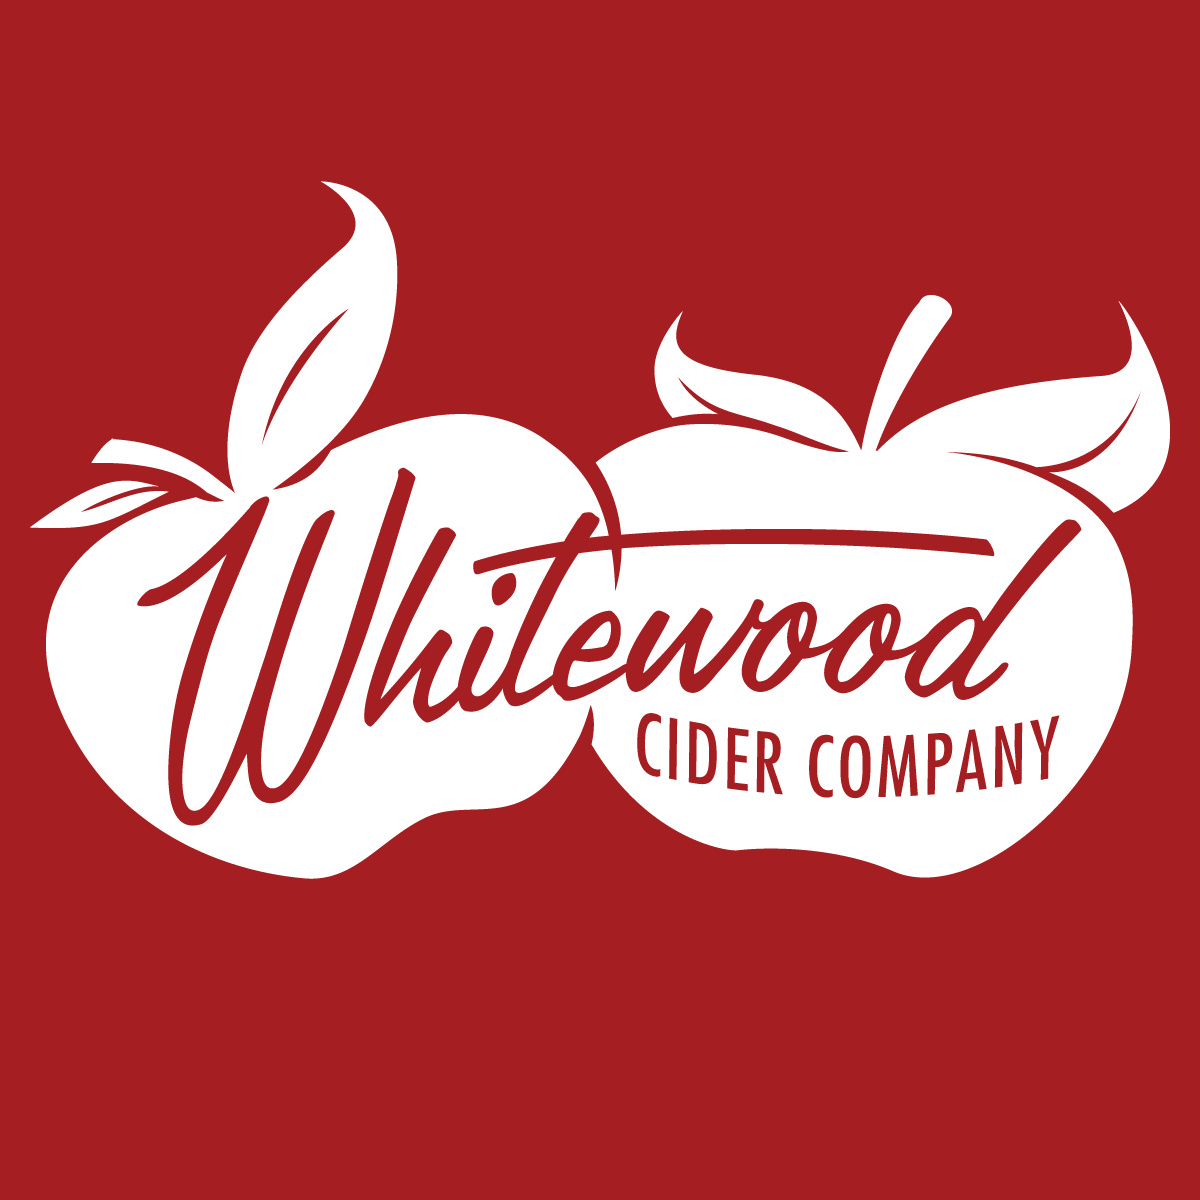 whitewoodcider_logo_1200sq.png